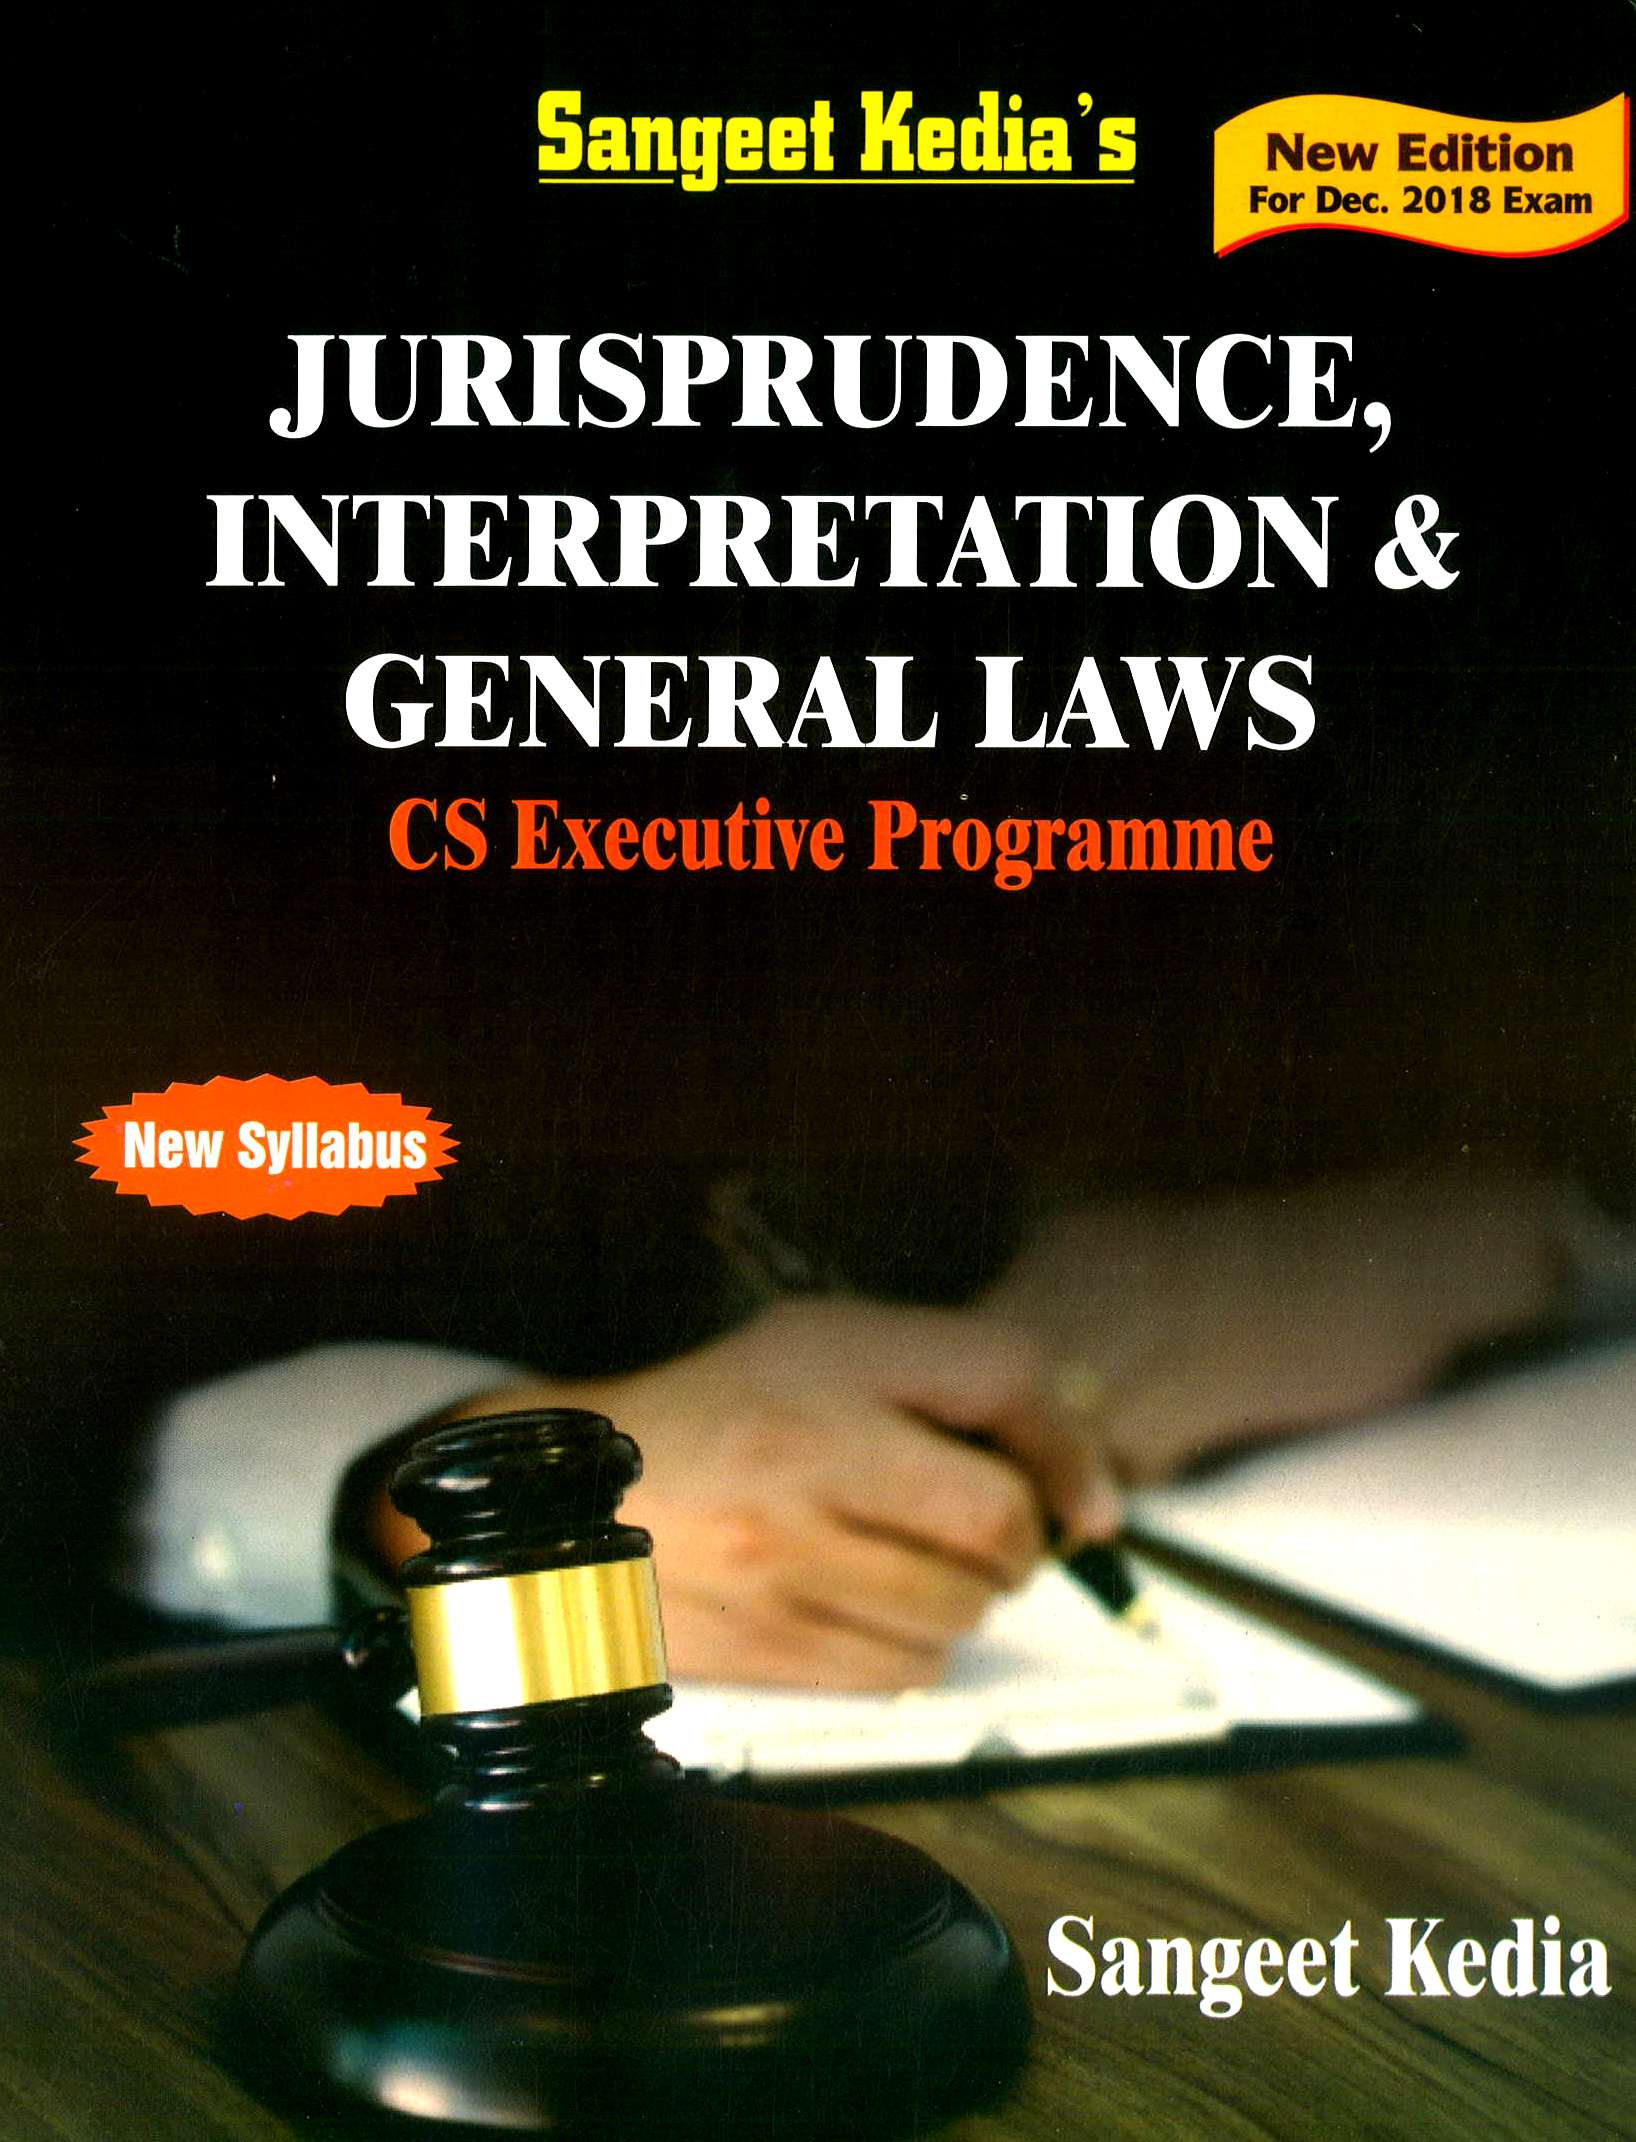 Pooja Law House CS Executive Programme New Syllabus Jurisprudence Interpretation and General Laws By Sangeet Kedia Applicable for December 2018 Exam